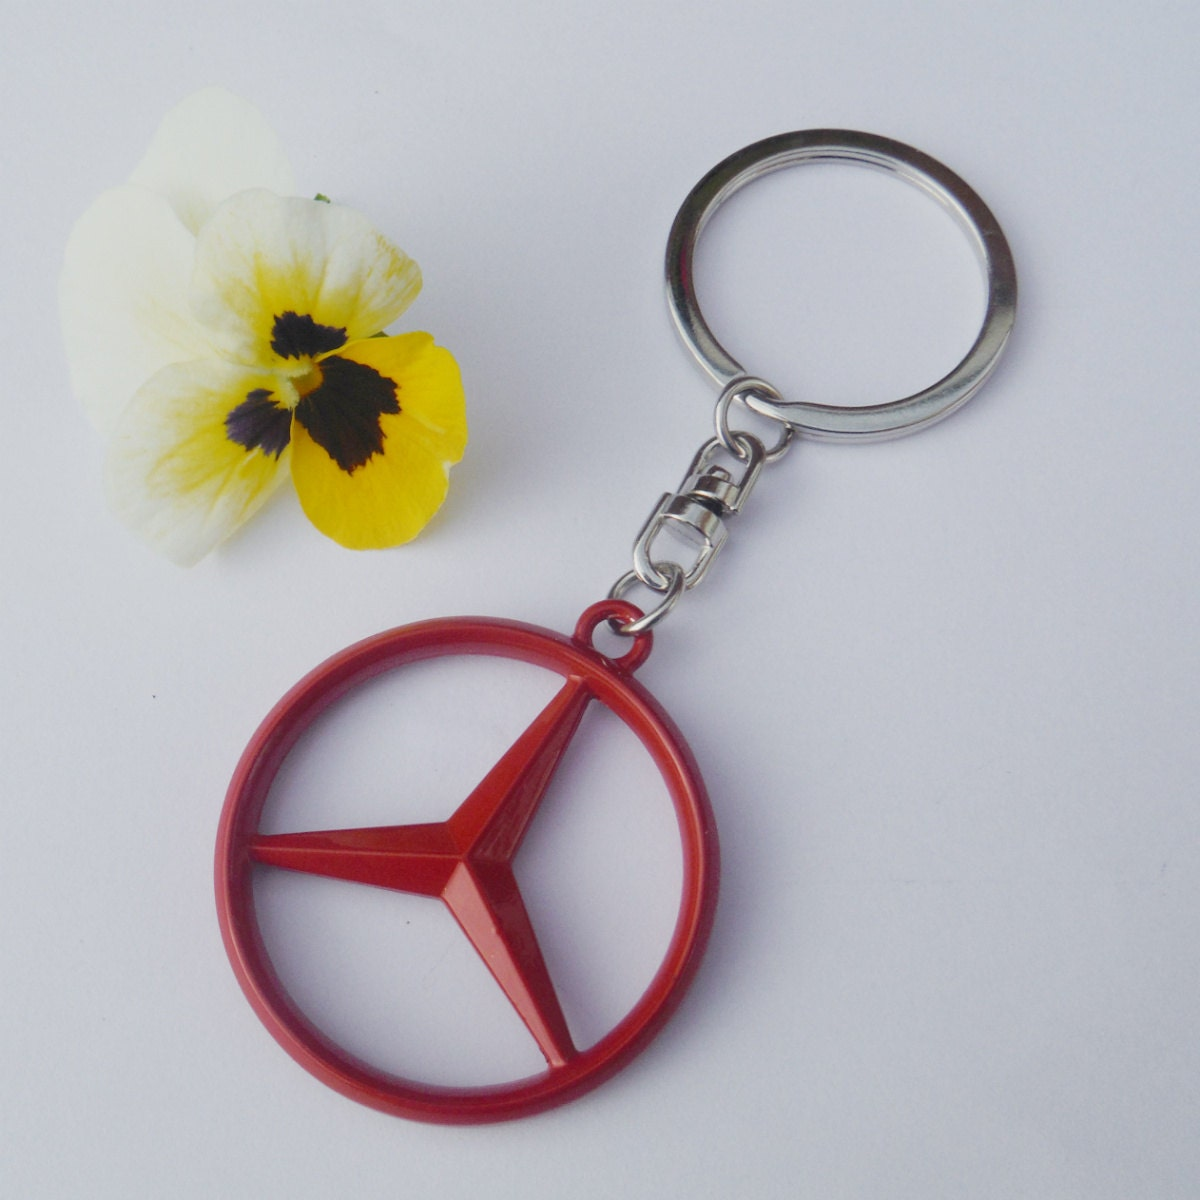 Mercedes Benz Merc Red Limited Edition Necklace Pendant Keychain Gift Set